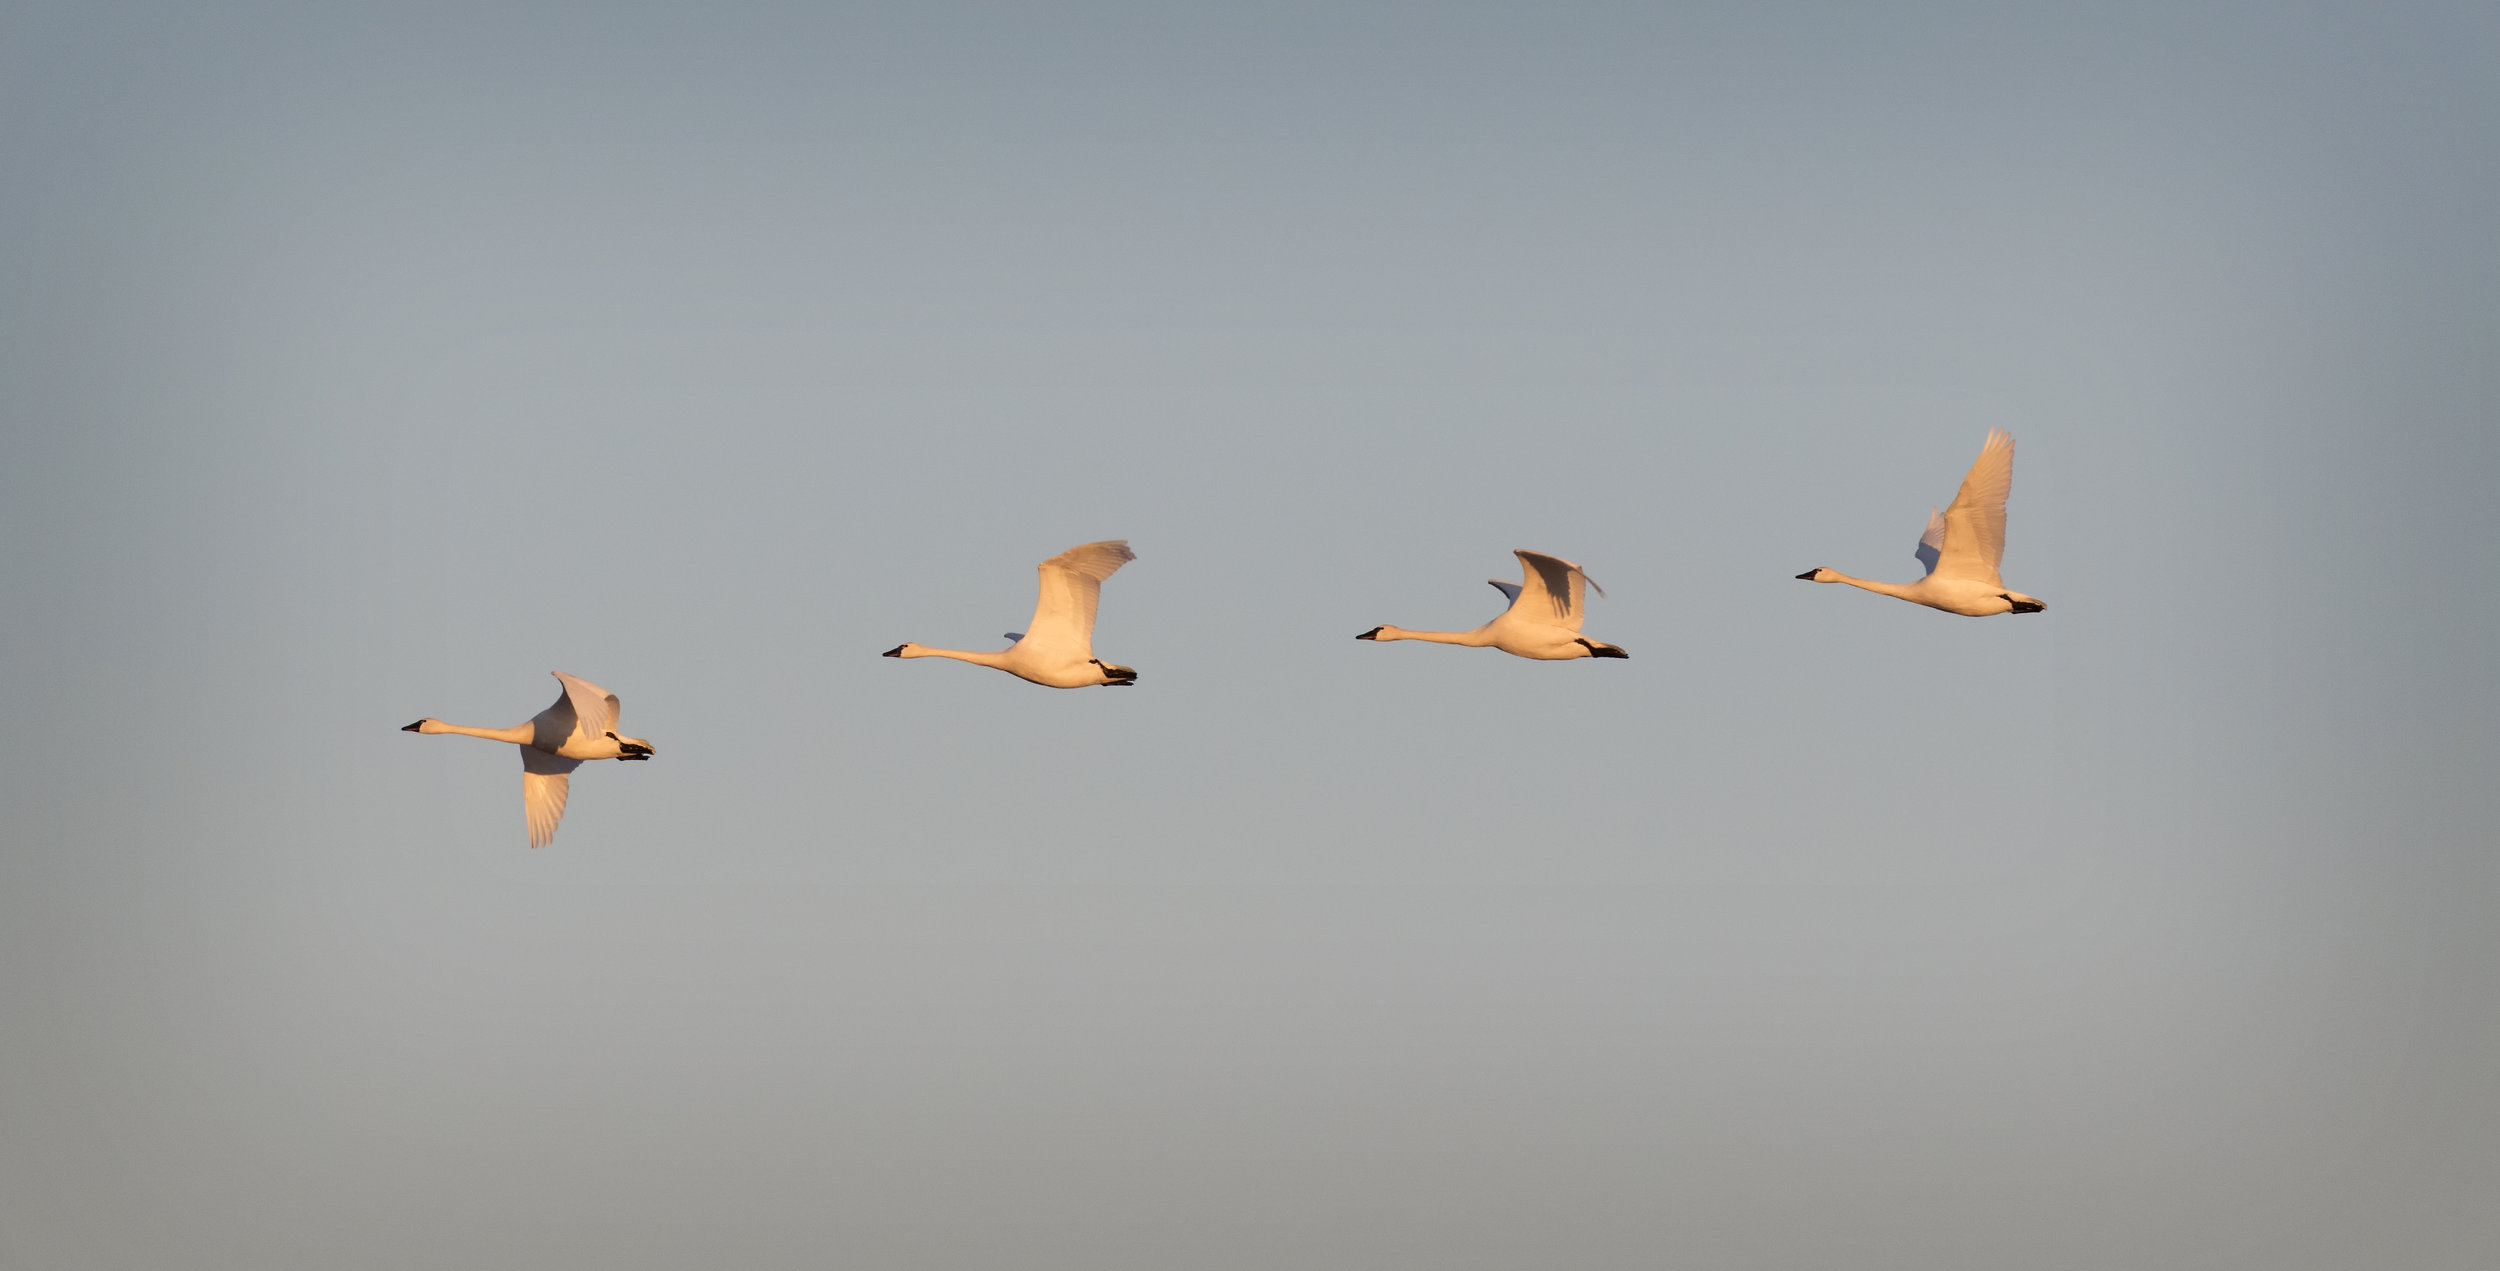 Tundra Swan Migration - Across the Blue Planet